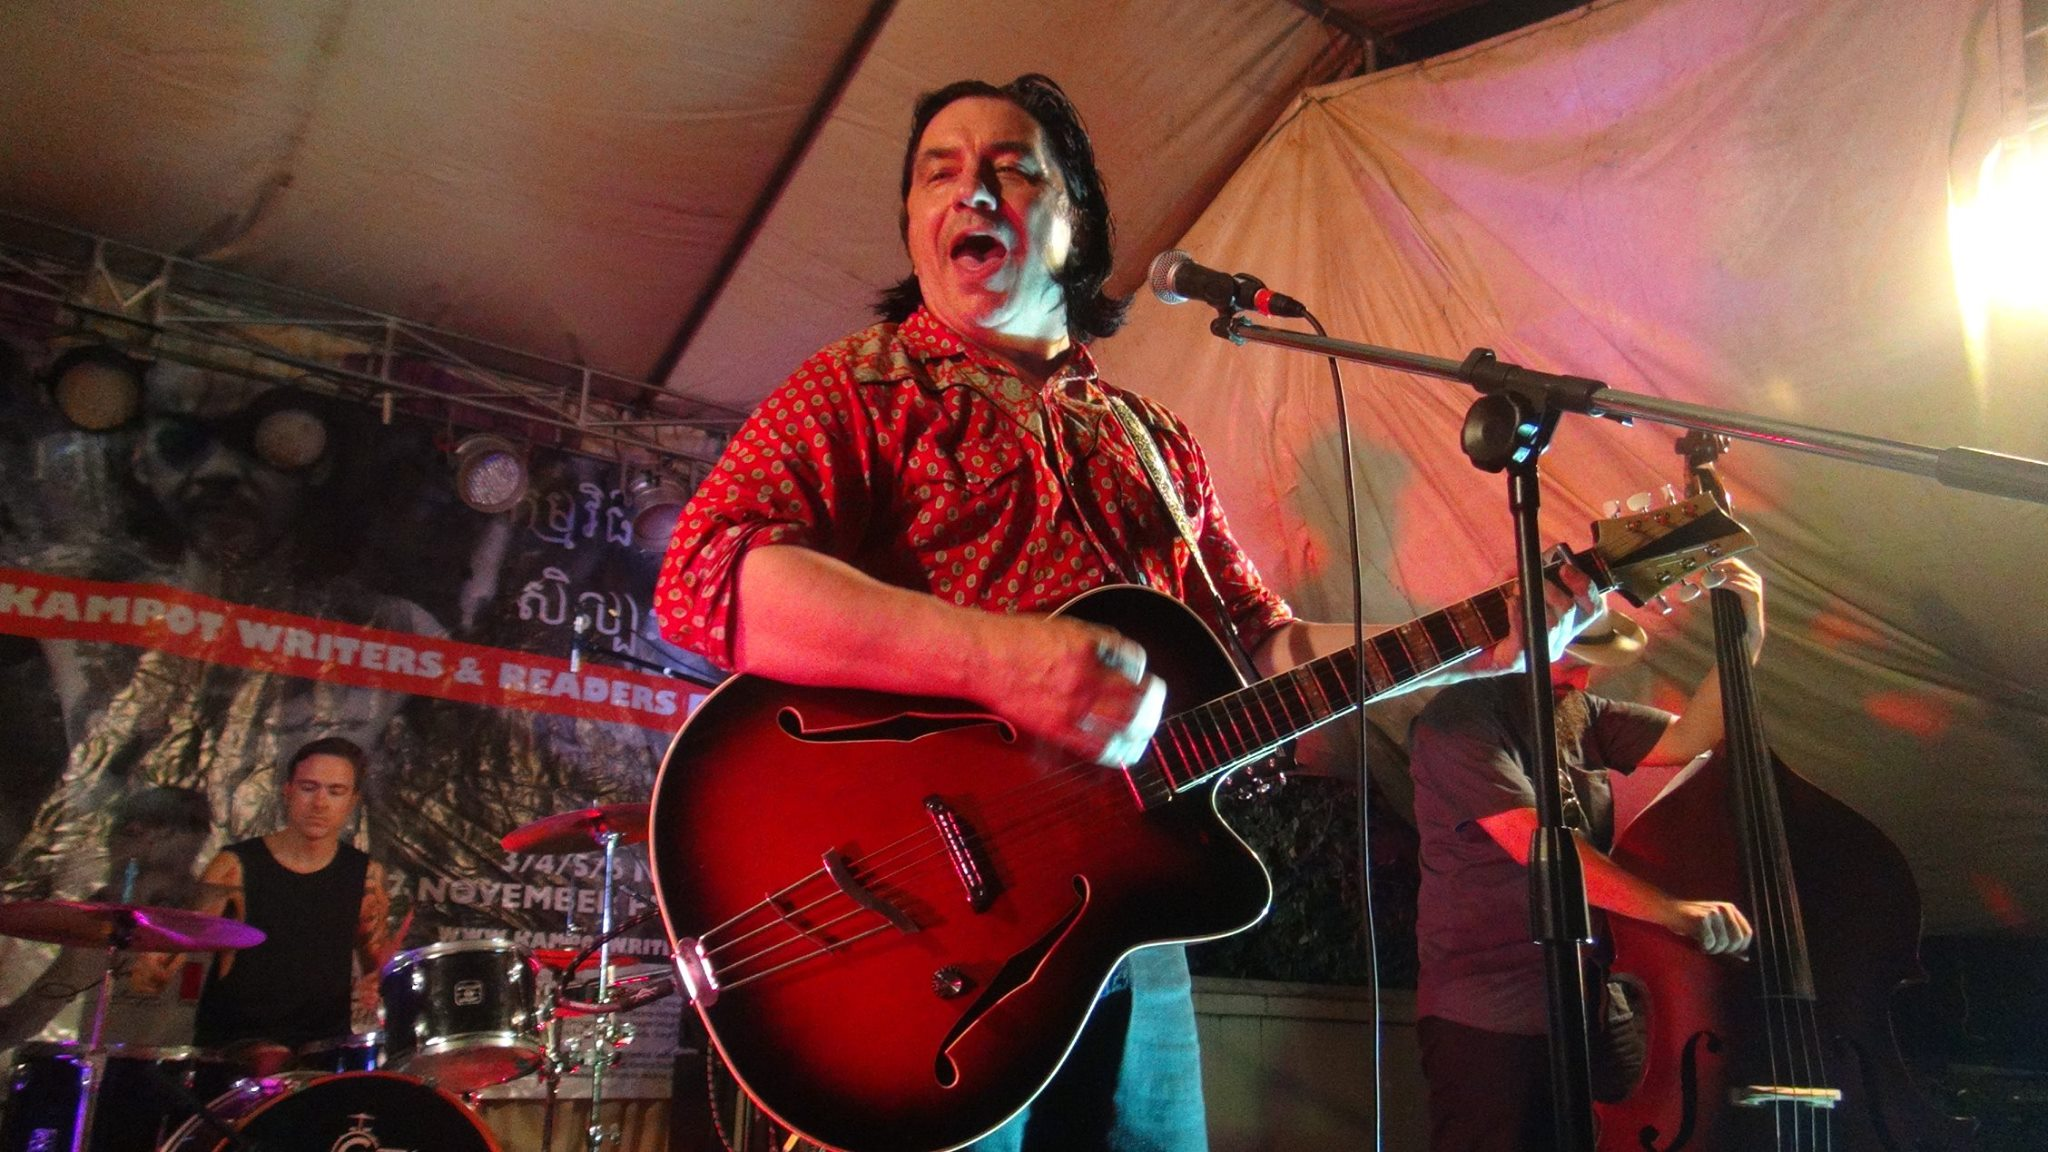 Rich Webb Band at the Kampot Writers and Readers Festival 2016